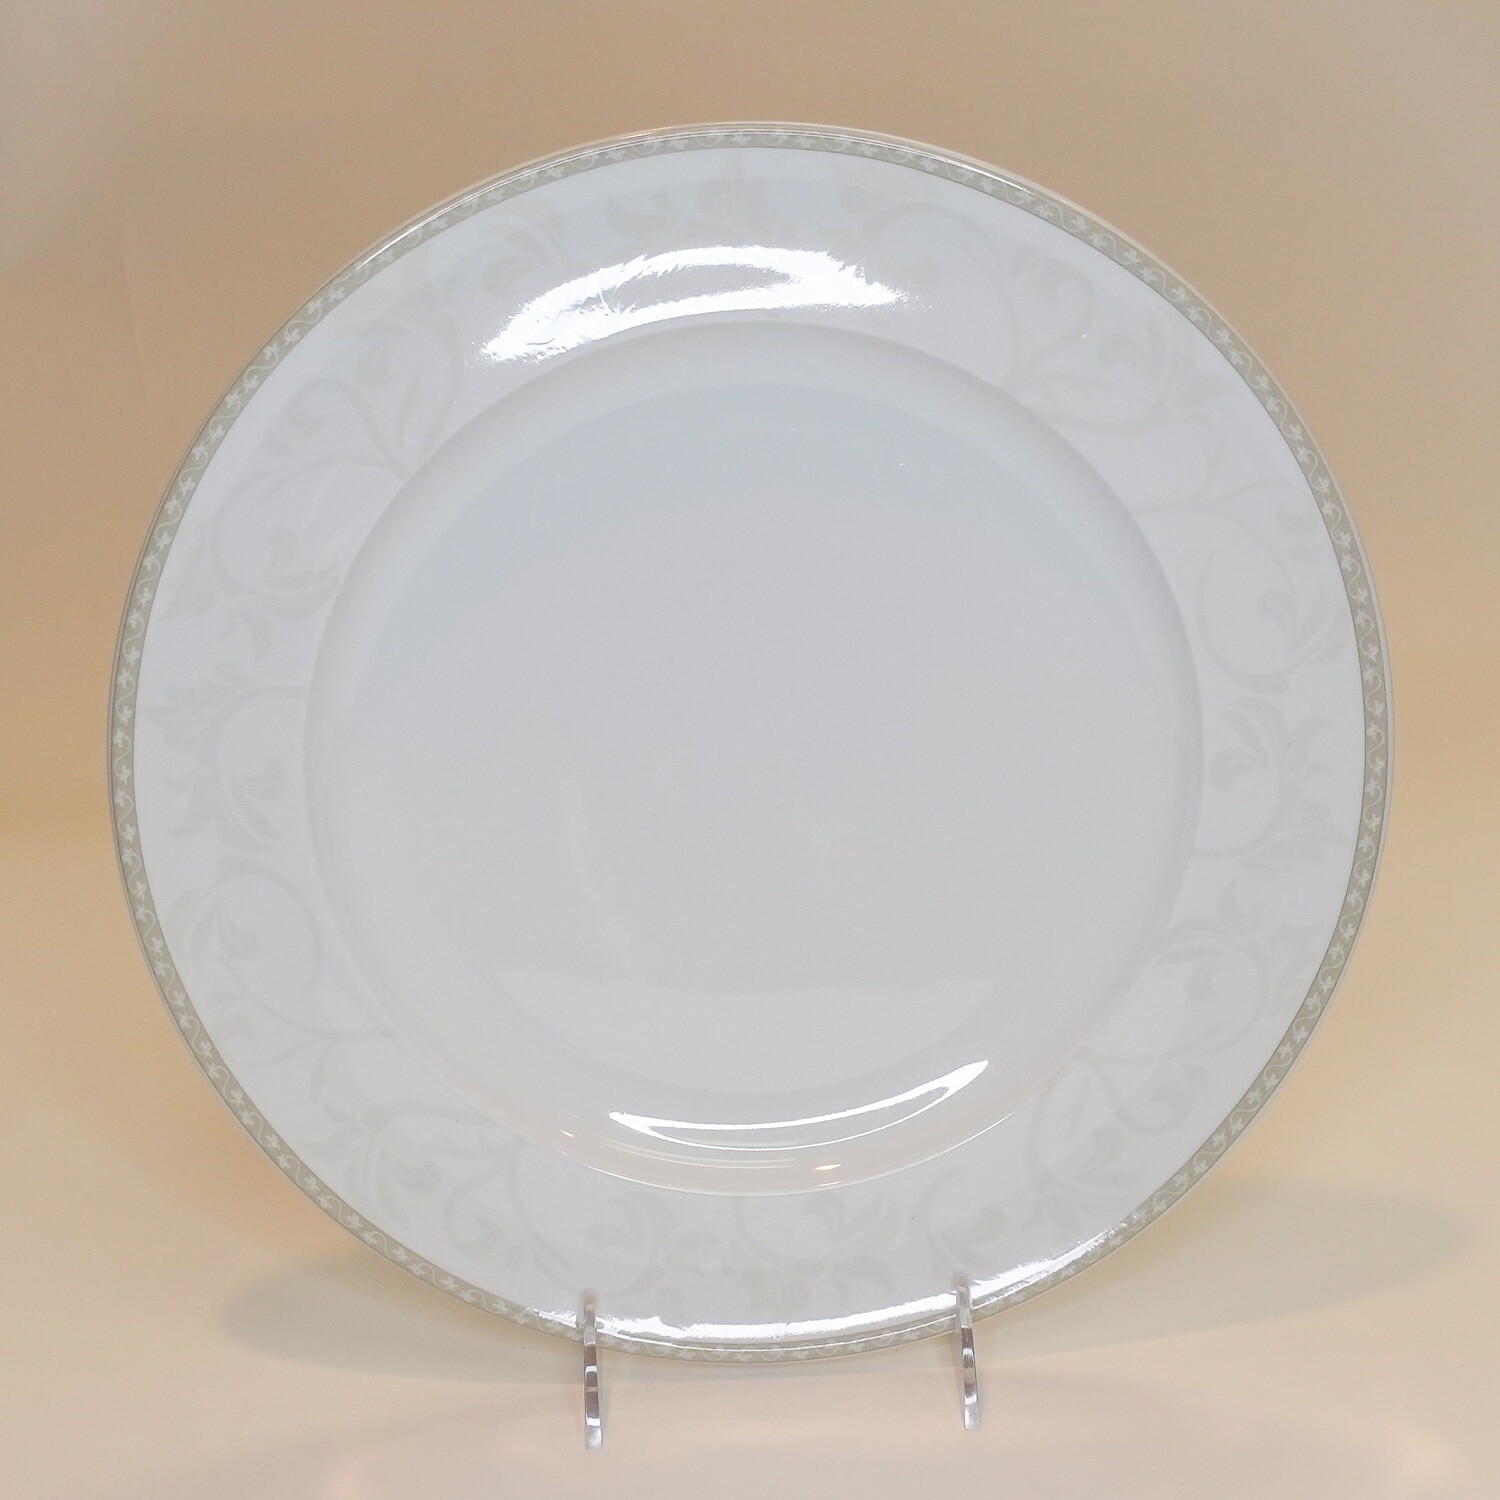 "Chatsworth Plate 12""- Dozen"